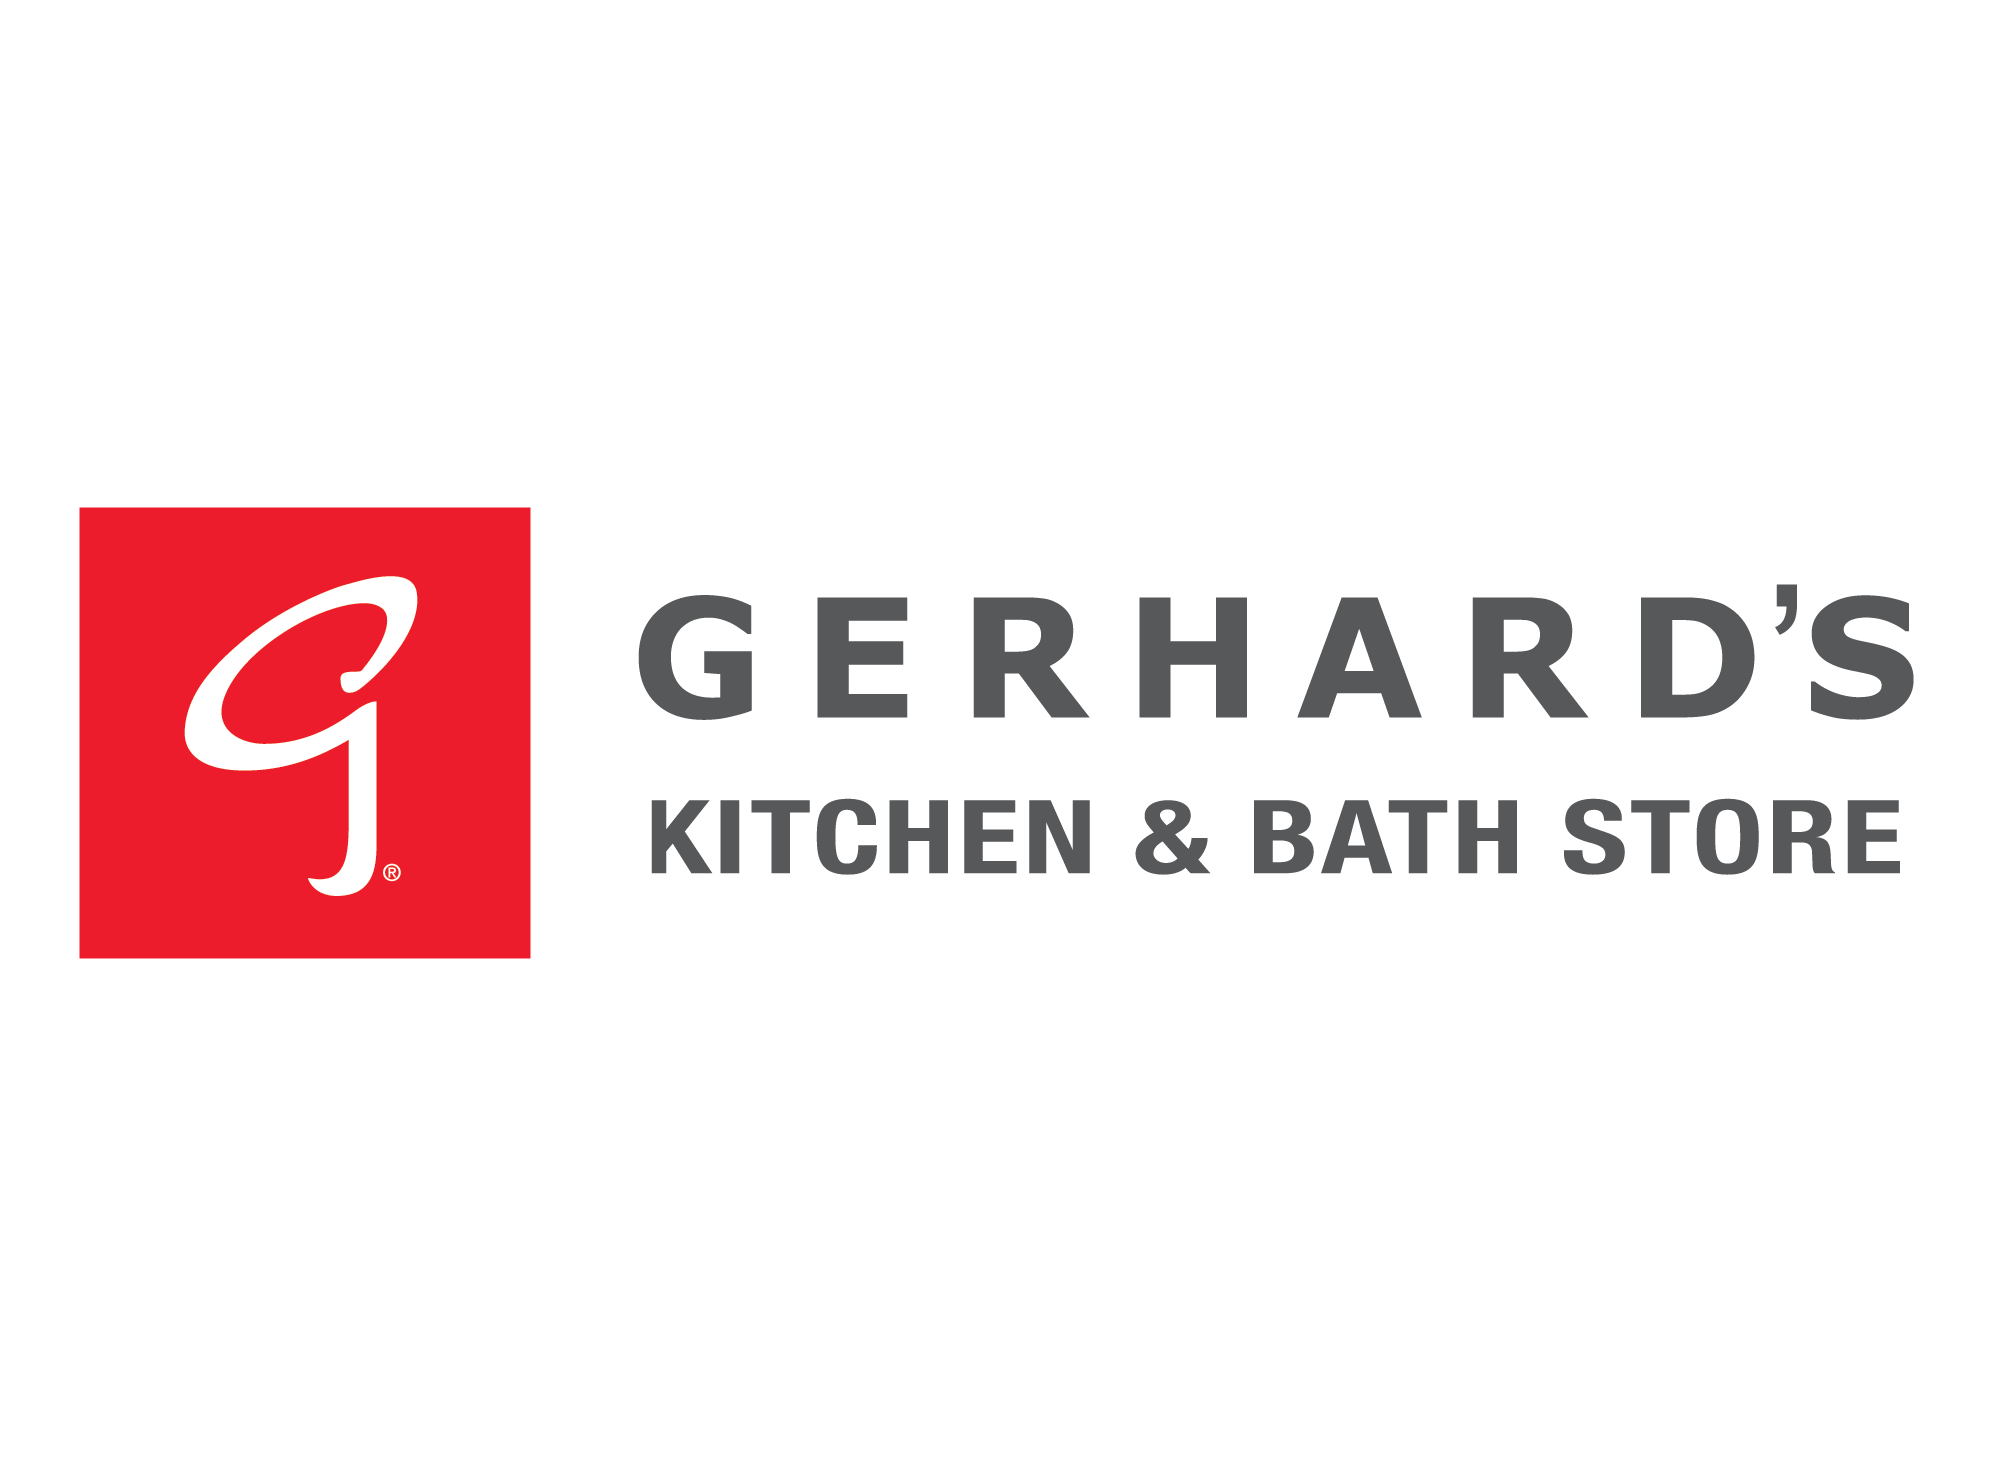 Gentil Logo For Gerhardu0027s Kitchen U0026 Bath Store